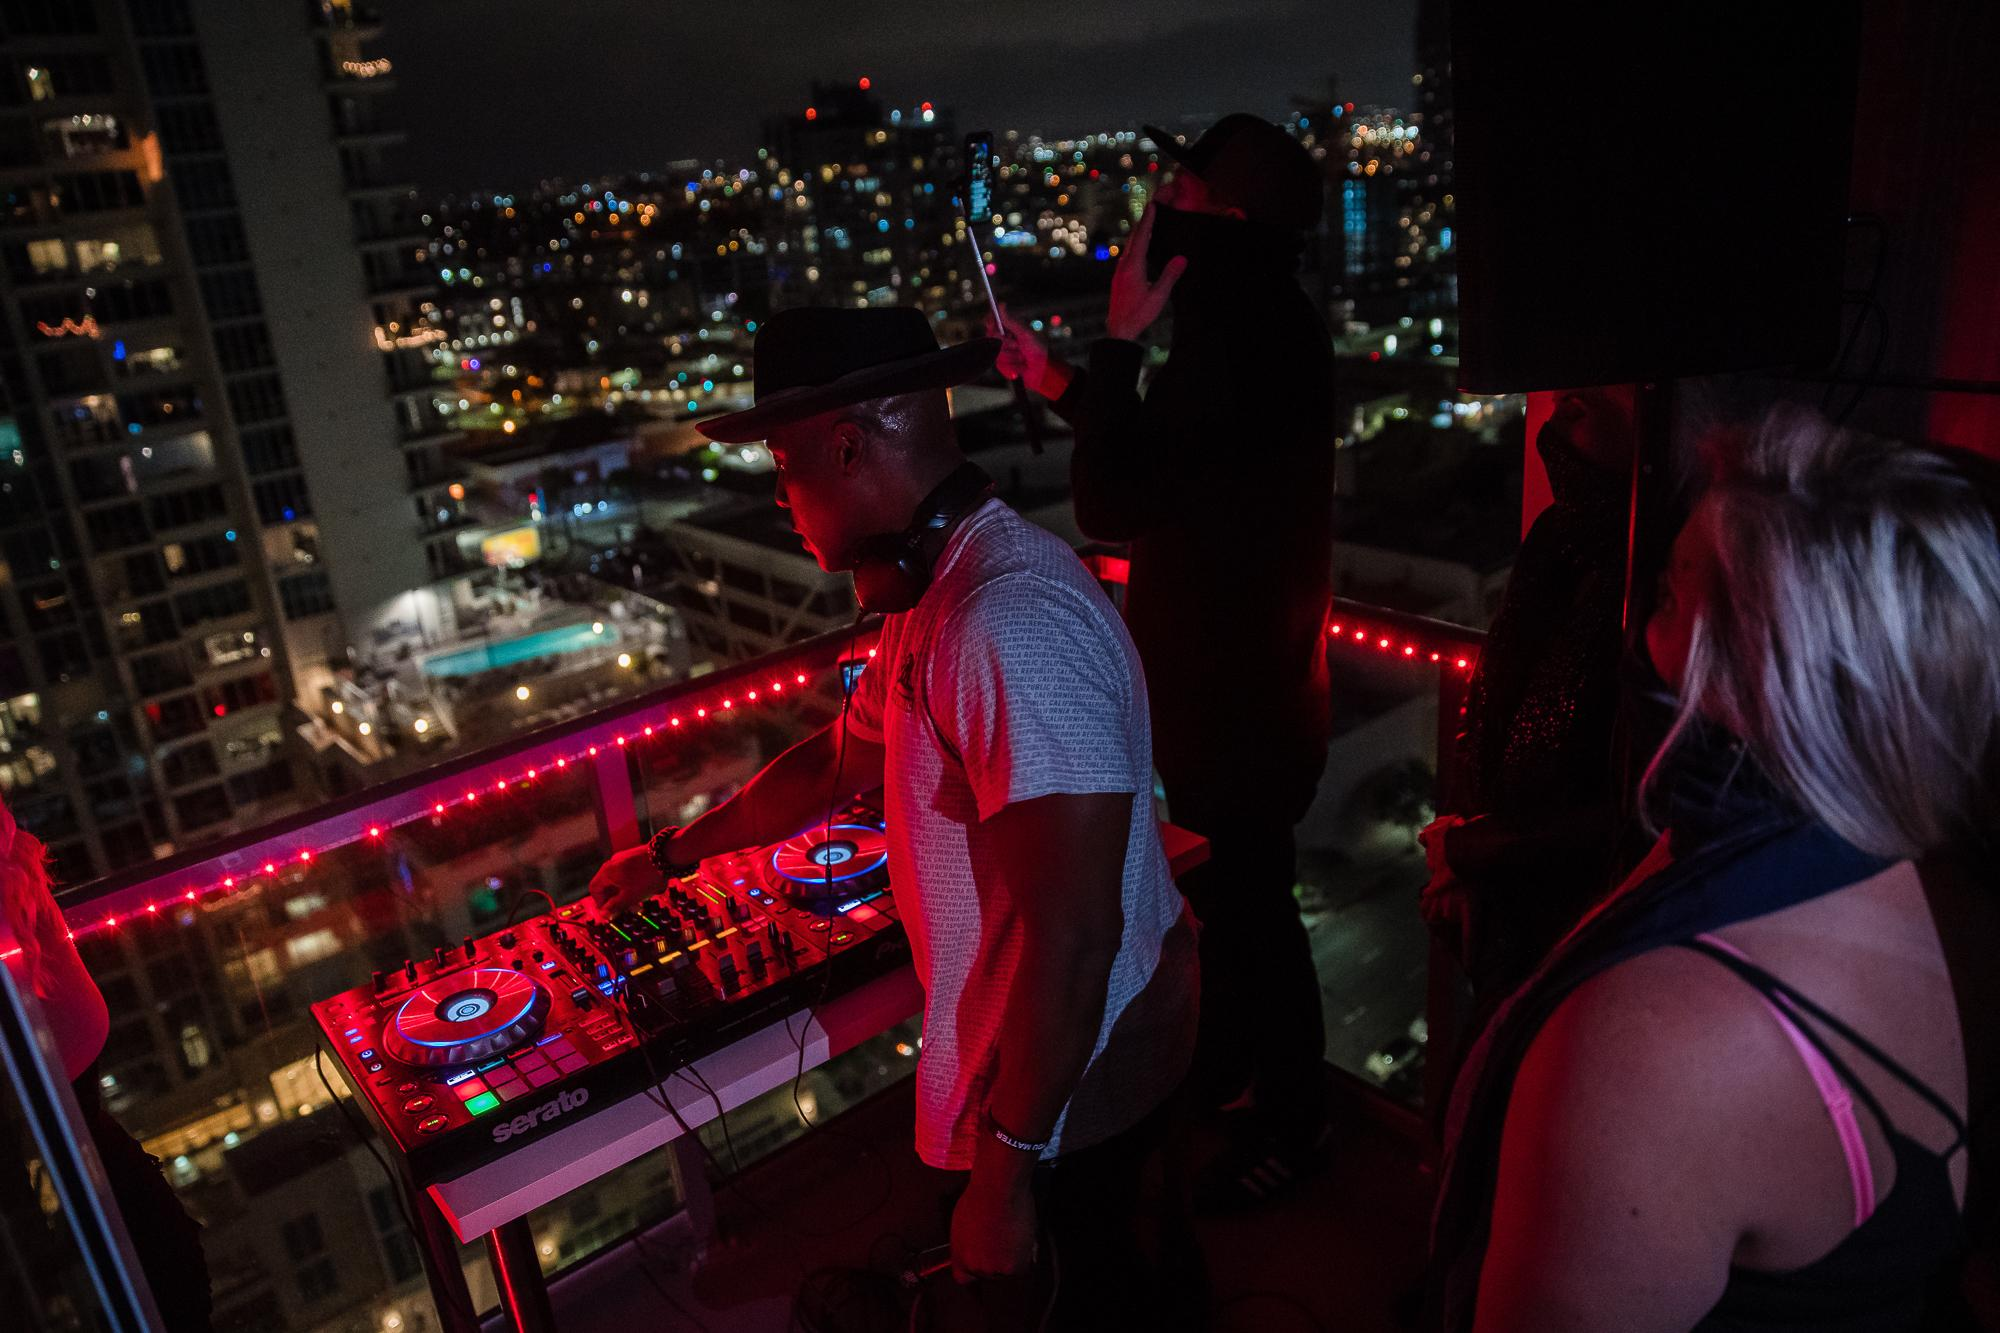 DJ IAMNOEL can be seen with a friends wearing bandanas on their faces while he plays his set on a balcony.